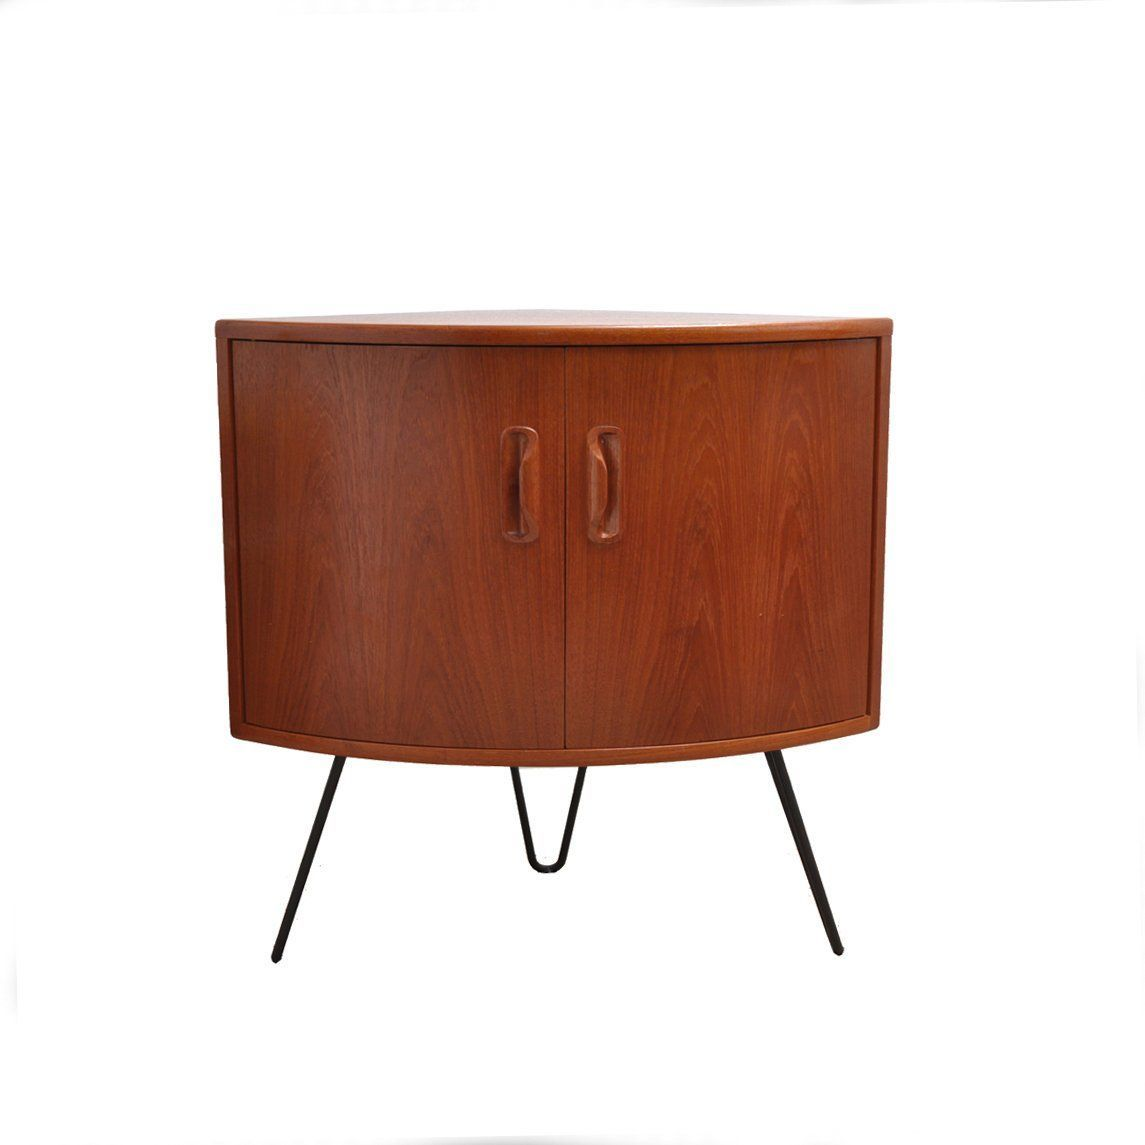 Hurrah, our 10th sale of this beauty hairpin legs. Not the biggest debate today but any thoughts on hairpin vs tapered legs? Personally, I like a tapered leg on my furniture and.. my men.#andersbrowneinterior  #retrovintageonline #retrovintage #instahome #interiors #design #interiordesign #mcmfurniture #midcenturyfurniture #midcenturydesign #danishstyle #britishmidcentury #scandistyle #retrofurniture #vintage #teakfurniture #70sfurniture #gplanstory #ontrend  #beverleyvintage